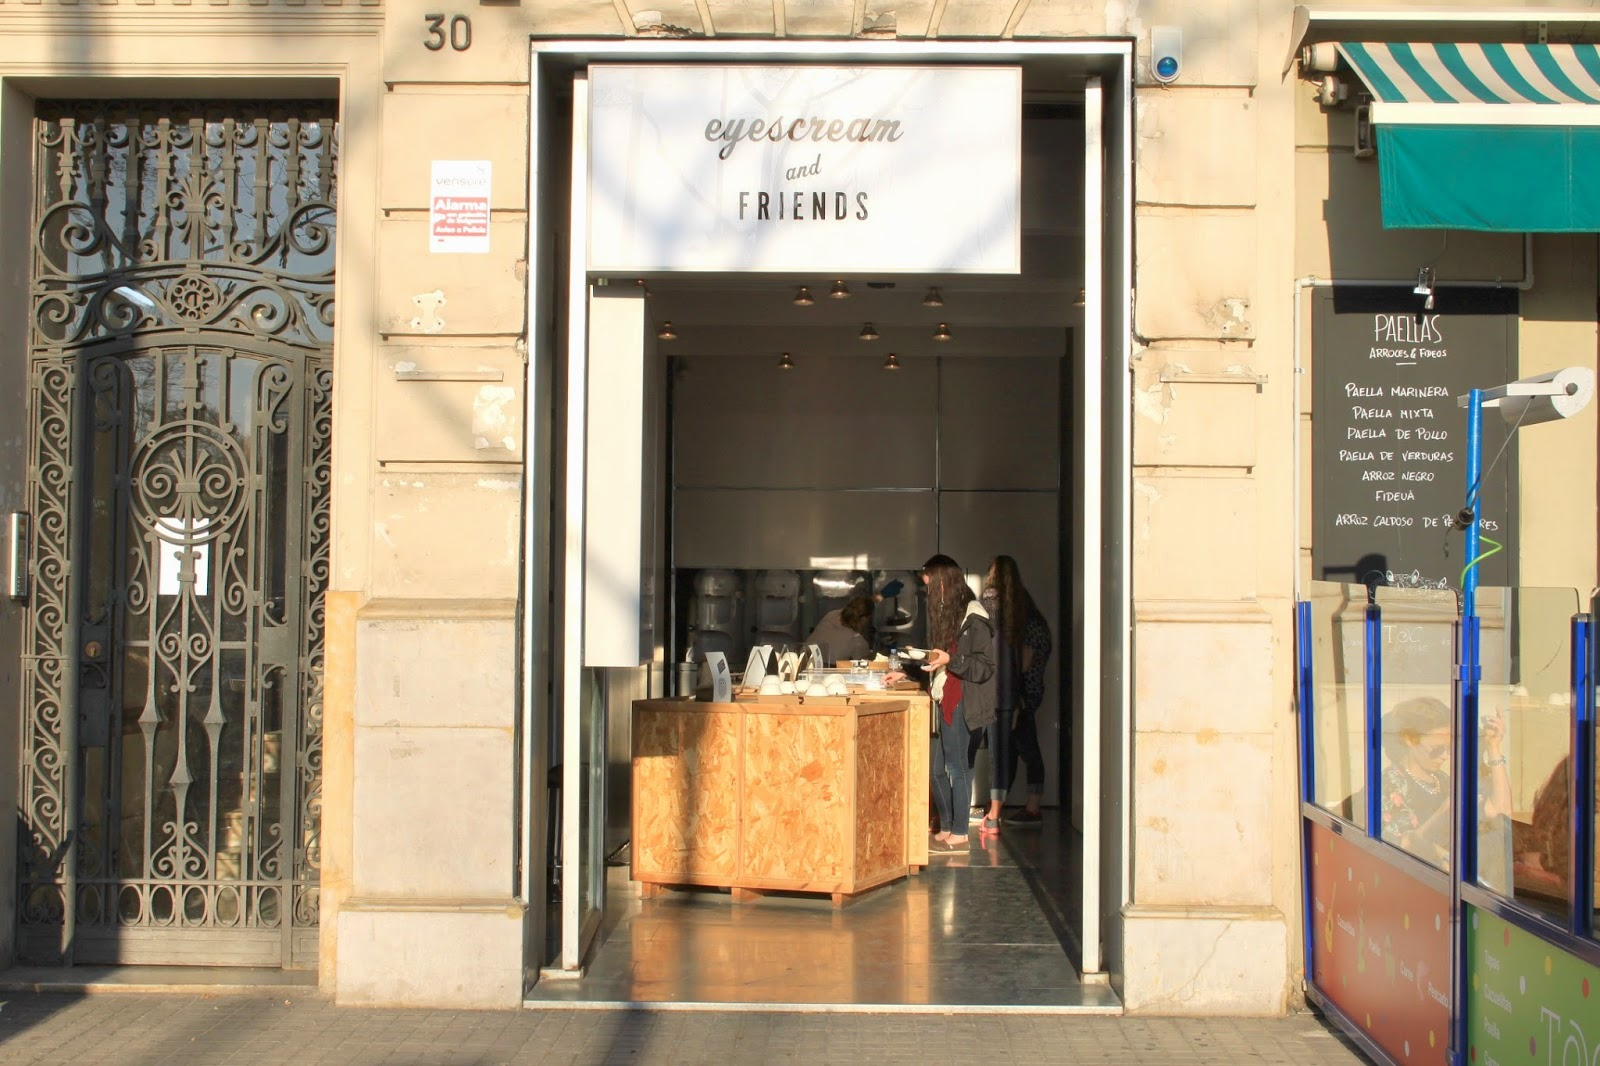 barcelona: places to eat and drink